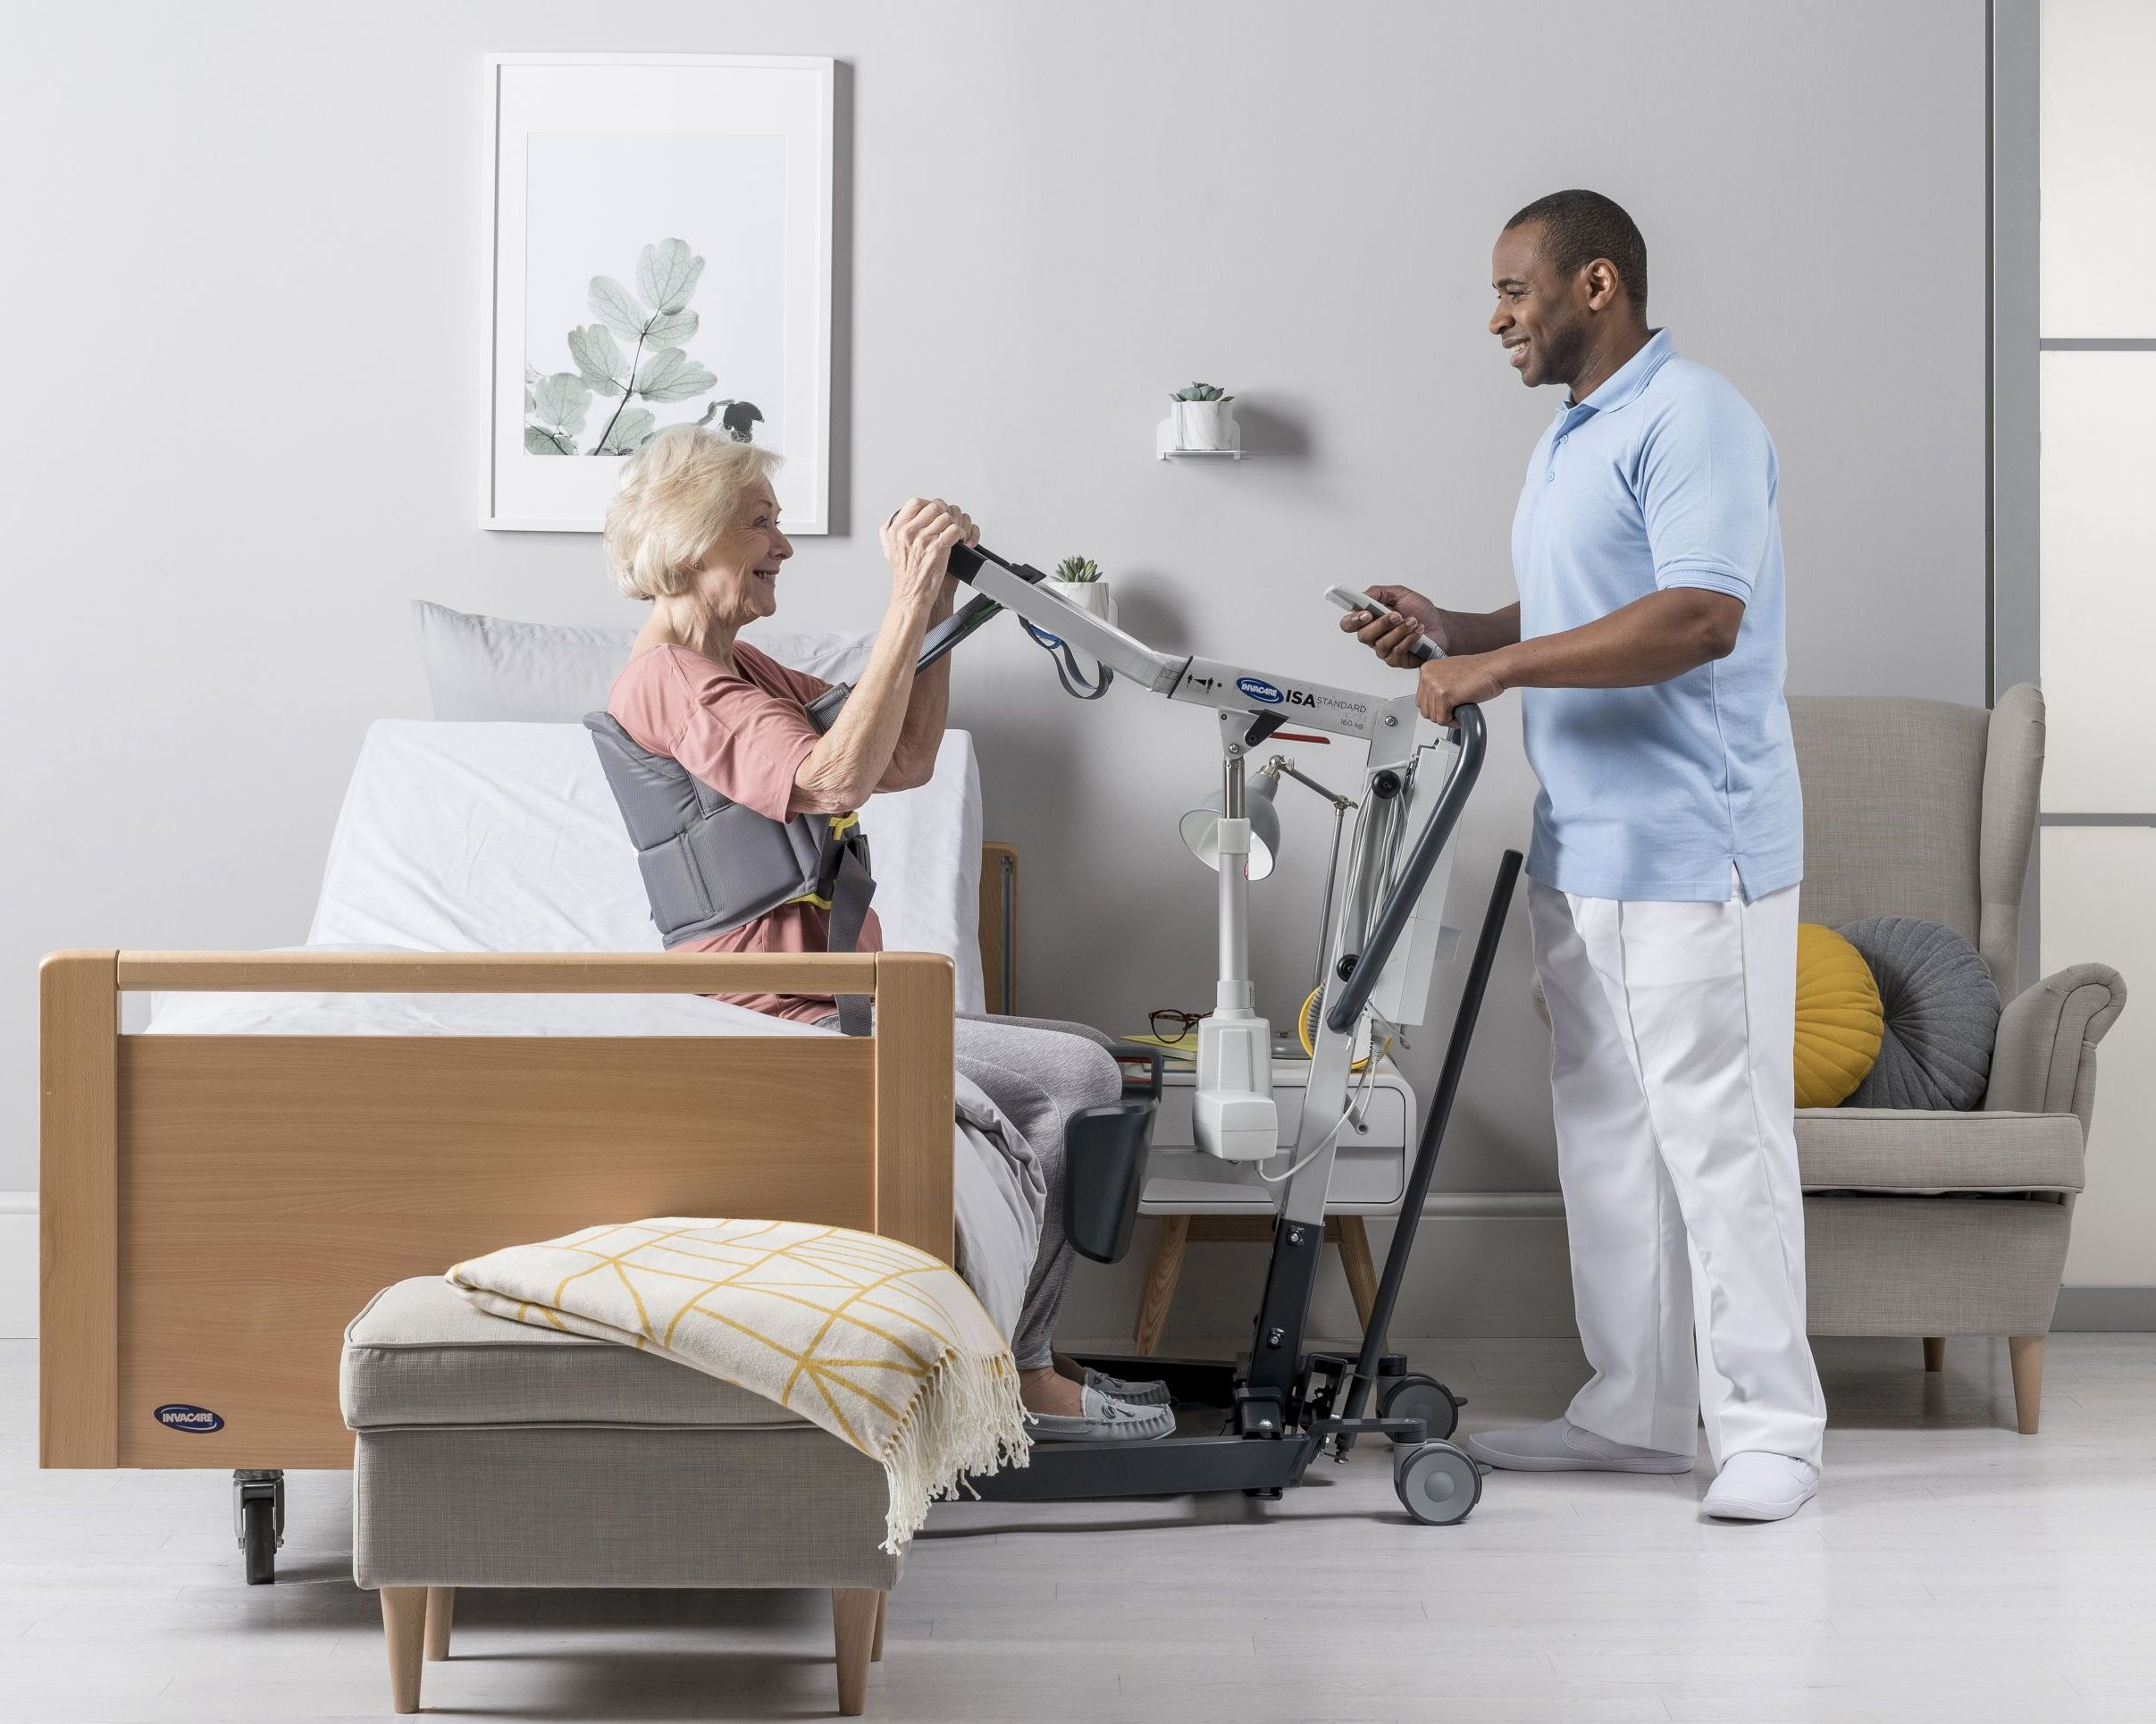 The Invacare ISA Stand Assist Hoist allows for comfortable and simple transfers